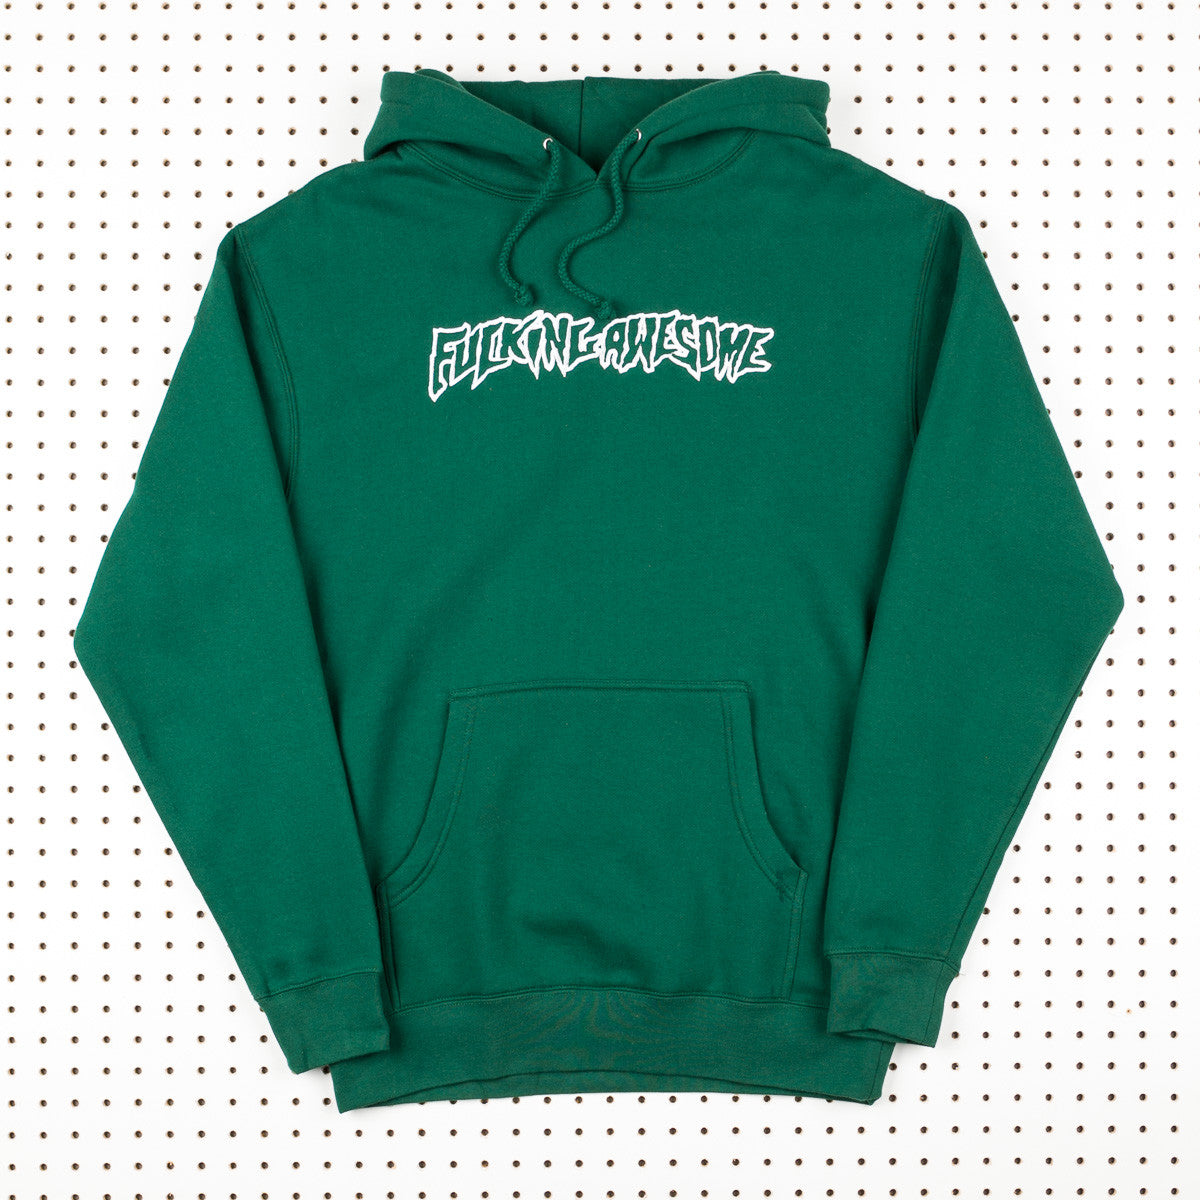 Fucking Awesome Embroidered Outline Hooded Sweatshirt - Green